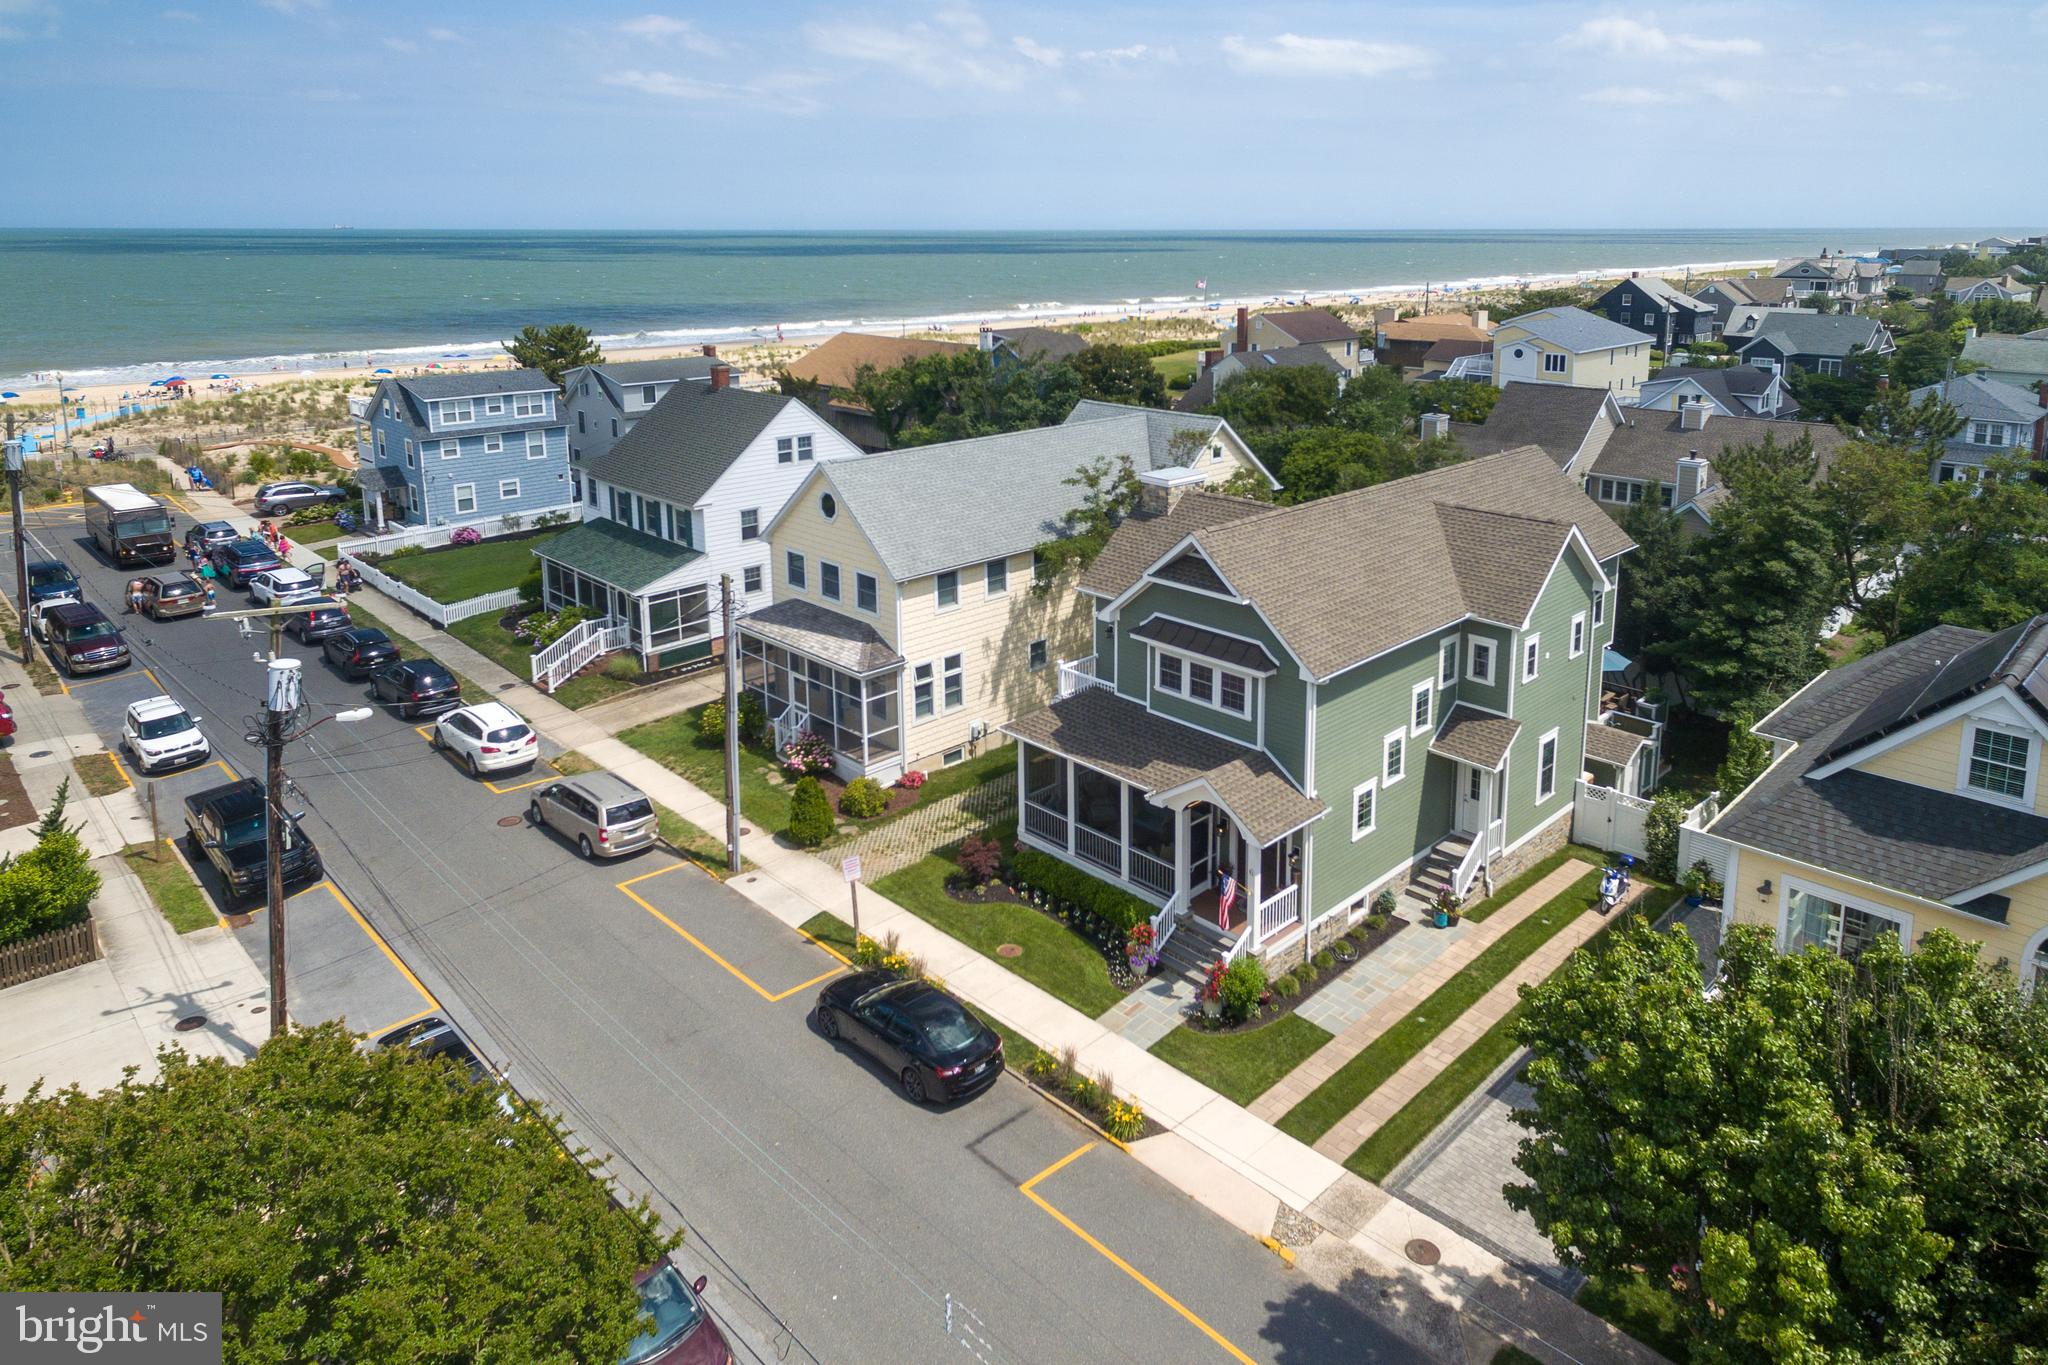 """Under Contract but available for Showings and Back Up Offers Welcome.  Experience Perfection on the much coveted Ocean Block of Stockley Street in Rehoboth Beach.  Fashioned in the spirit of a beach cottage is a charismatic blend of upscale and casually sophisticated timeless design. Completely rebuilt from the basement foundation up in 2017 this home offers every imaginable luxury finish to please the most sophisticated buyer.  Built to the highest standards, attention to detail is clearly evident with large plank bamboo flooring throughout the entire home, coffered ceilings, extensive custom molding and cabinetry, shiplap fireplace surround, Gourmet kitchen with Wolf 6 burner range and grill and professional range hood, French door refrigerator, separate built in ice-maker, 2 built-in refrigerator drawers, over-sized quartzite island with copper basin prep sink and built-in microwave, granite farm sink surrounded by quartz counters, custom cabinetry and pantry.  The rear yard is an oasis with privacy landscaping and fencing and a large deck providing the perfect environment for entertaining.  Upstairs you'll find the Primary Master Bedroom with custom walk-in closets, expansive master bath and a private balcony with stunning ocean views.  Down the hall are two additional Guest Bedrooms each with custom built-in cabinetry, a large hall guest bath, and a large laundry room.  In the rear of the home is an additional Master Bedroom with a private ensuite bath.  Additional features include HardiPlank Siding, large front screened porch, off-street parking, outdoor shower, full """"dry"""" basement, fully fenced yard, irrigation, steps to the ocean and this home is """"not"""" in a flood zone.  This ideal location within the highly coveted City of Rehoboth Beach allows for easy walking proximity to a myriad of shopping, dining and cultural offerings, as well as the mile long boardwalk and Atlantic ocean beach."""